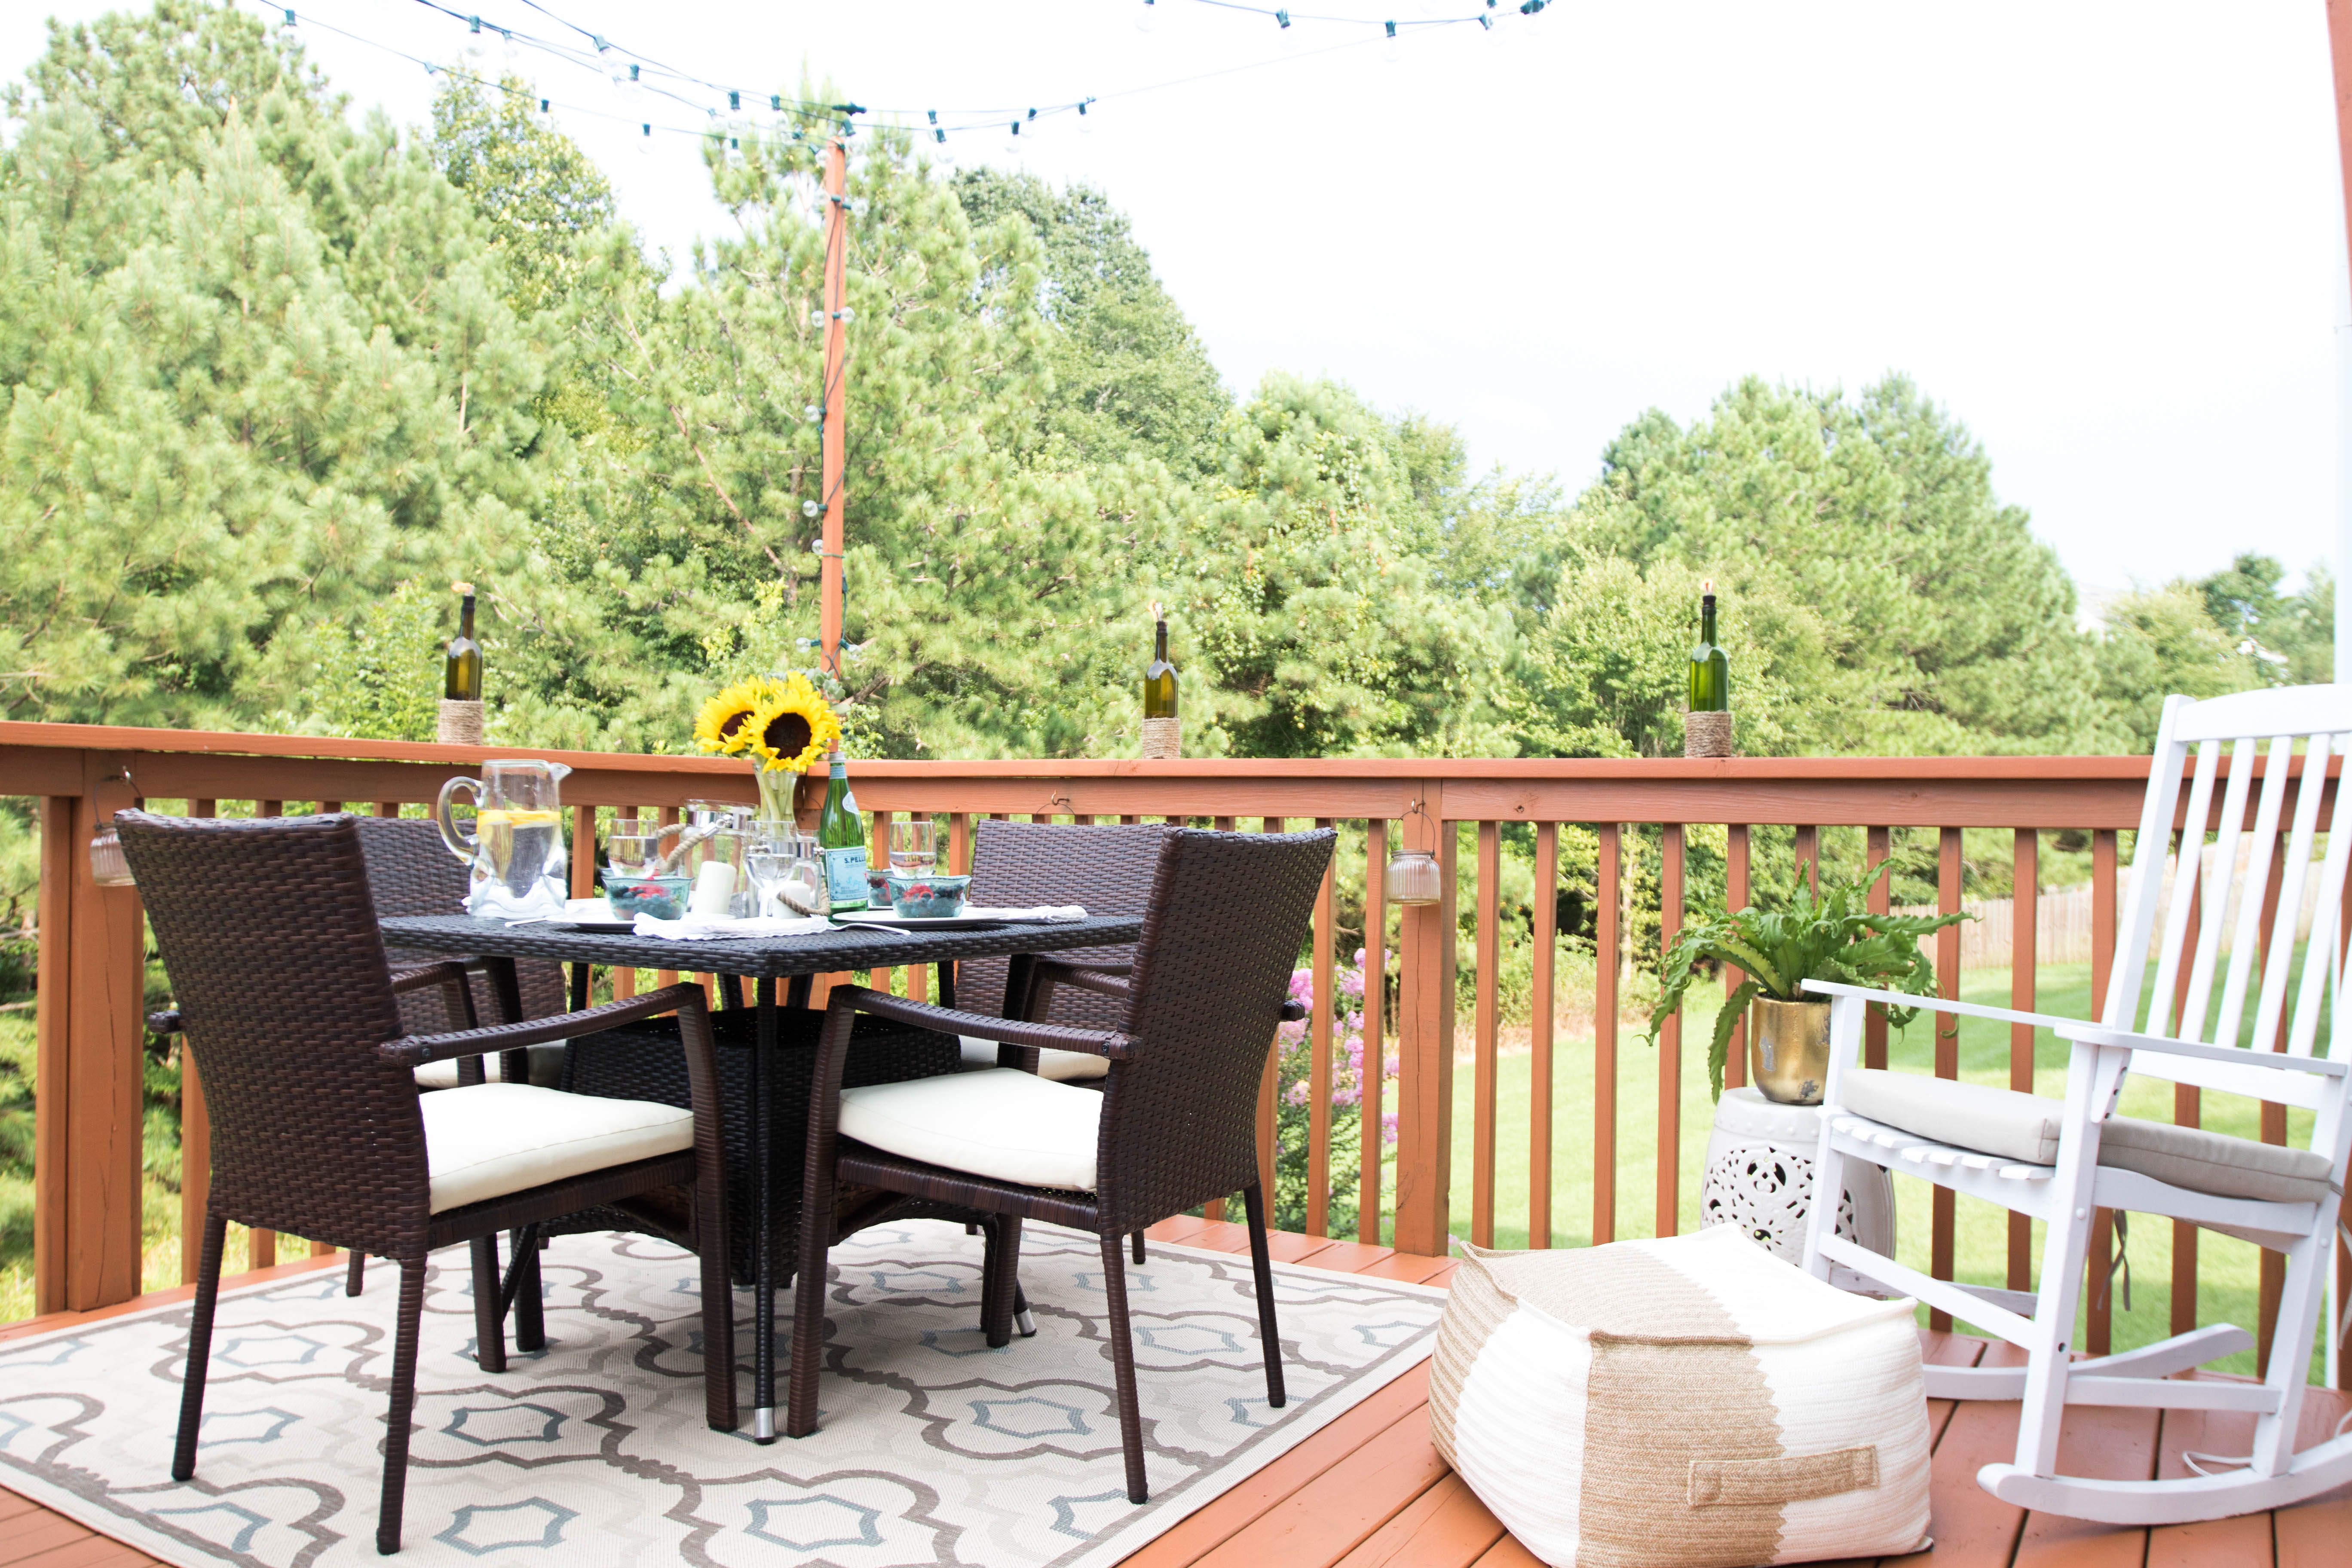 patio reveal with atg stores coffee beans and bobby pins